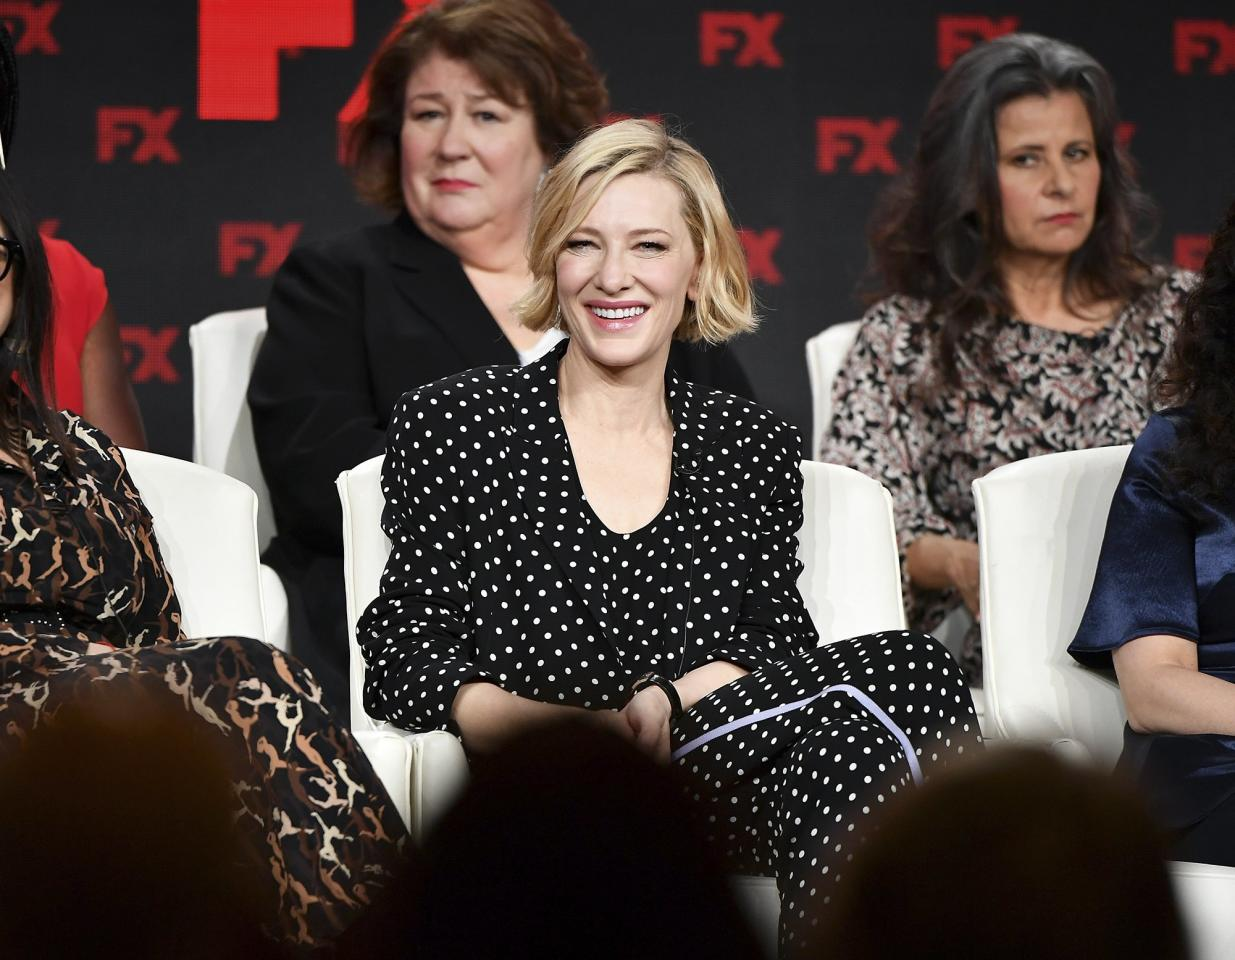 The cast ofFX's <em>Mrs. America, </em>Uzo Aduba, Stacey Sher, Margo Martindale, Cate Blanchett, Tracey Ullman and Dahvi Waller, speak during the 2020 Winter TCA Tour in Pasadena, California on Thursday.